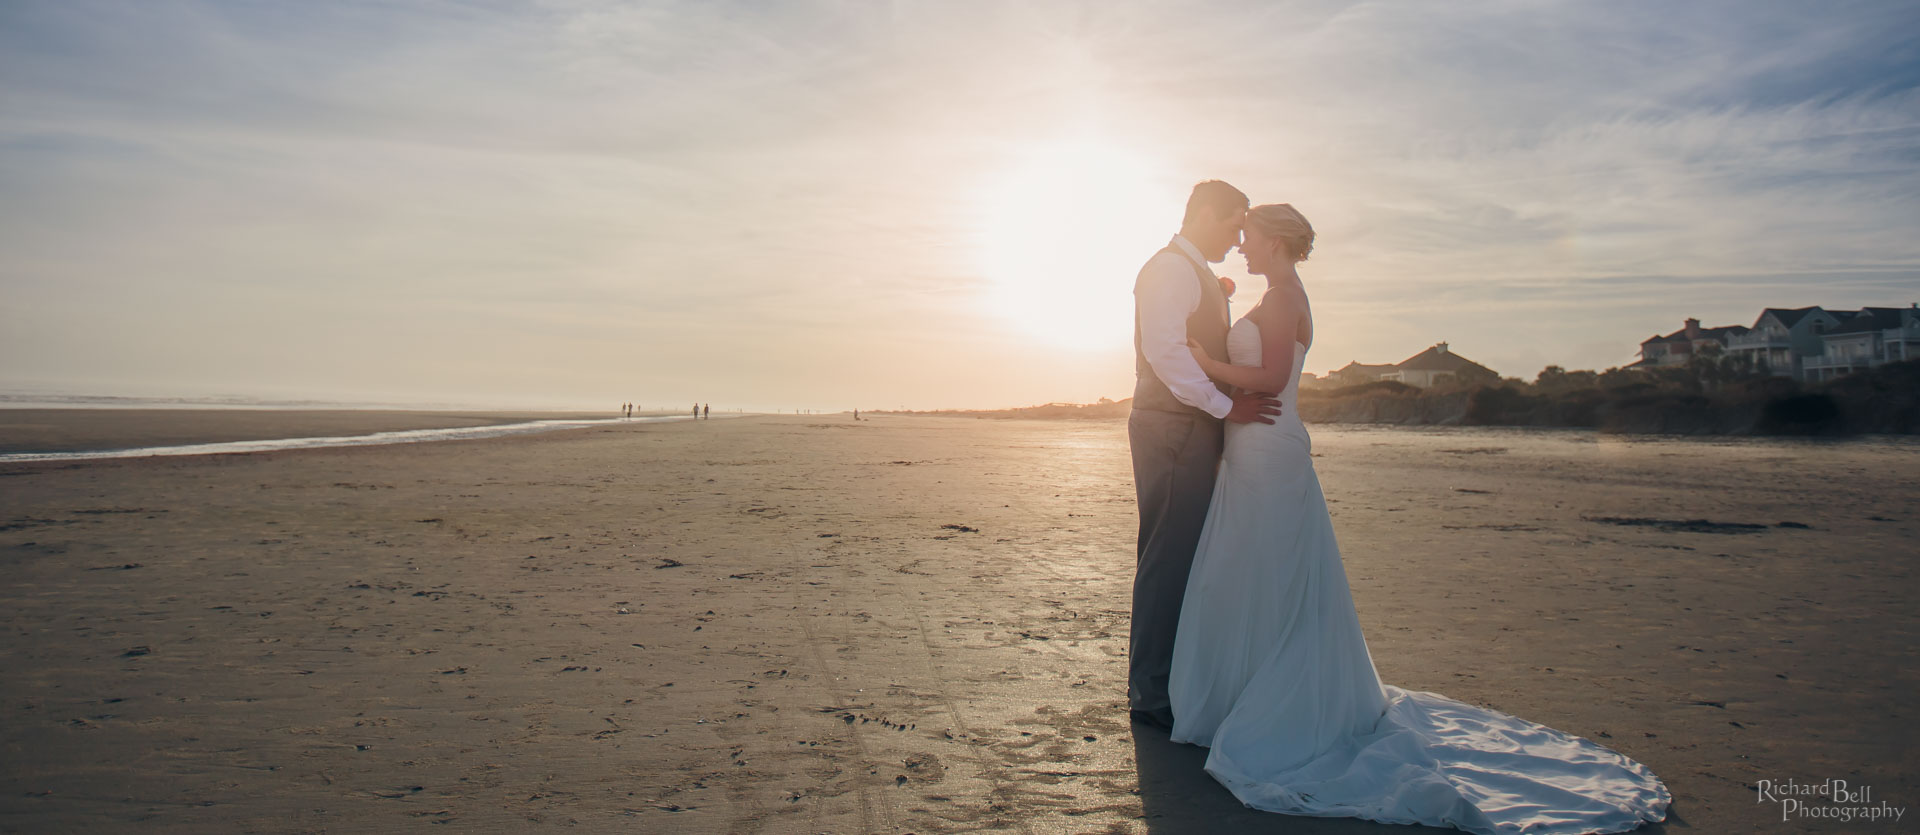 Bride and Groom on beach of Wild Dunes